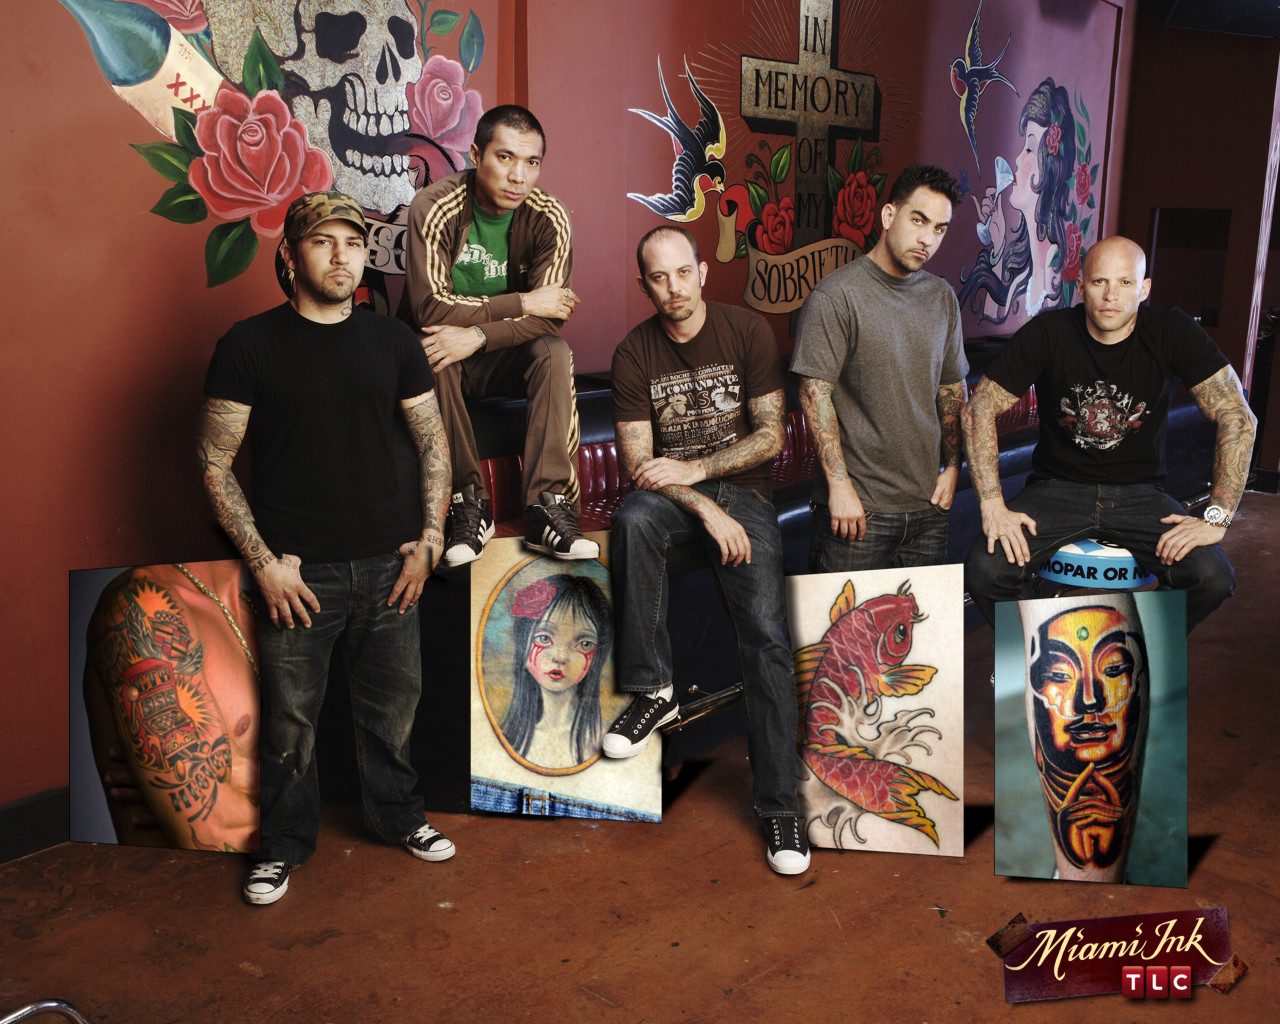 miami ink images miami ink hd wallpaper and background